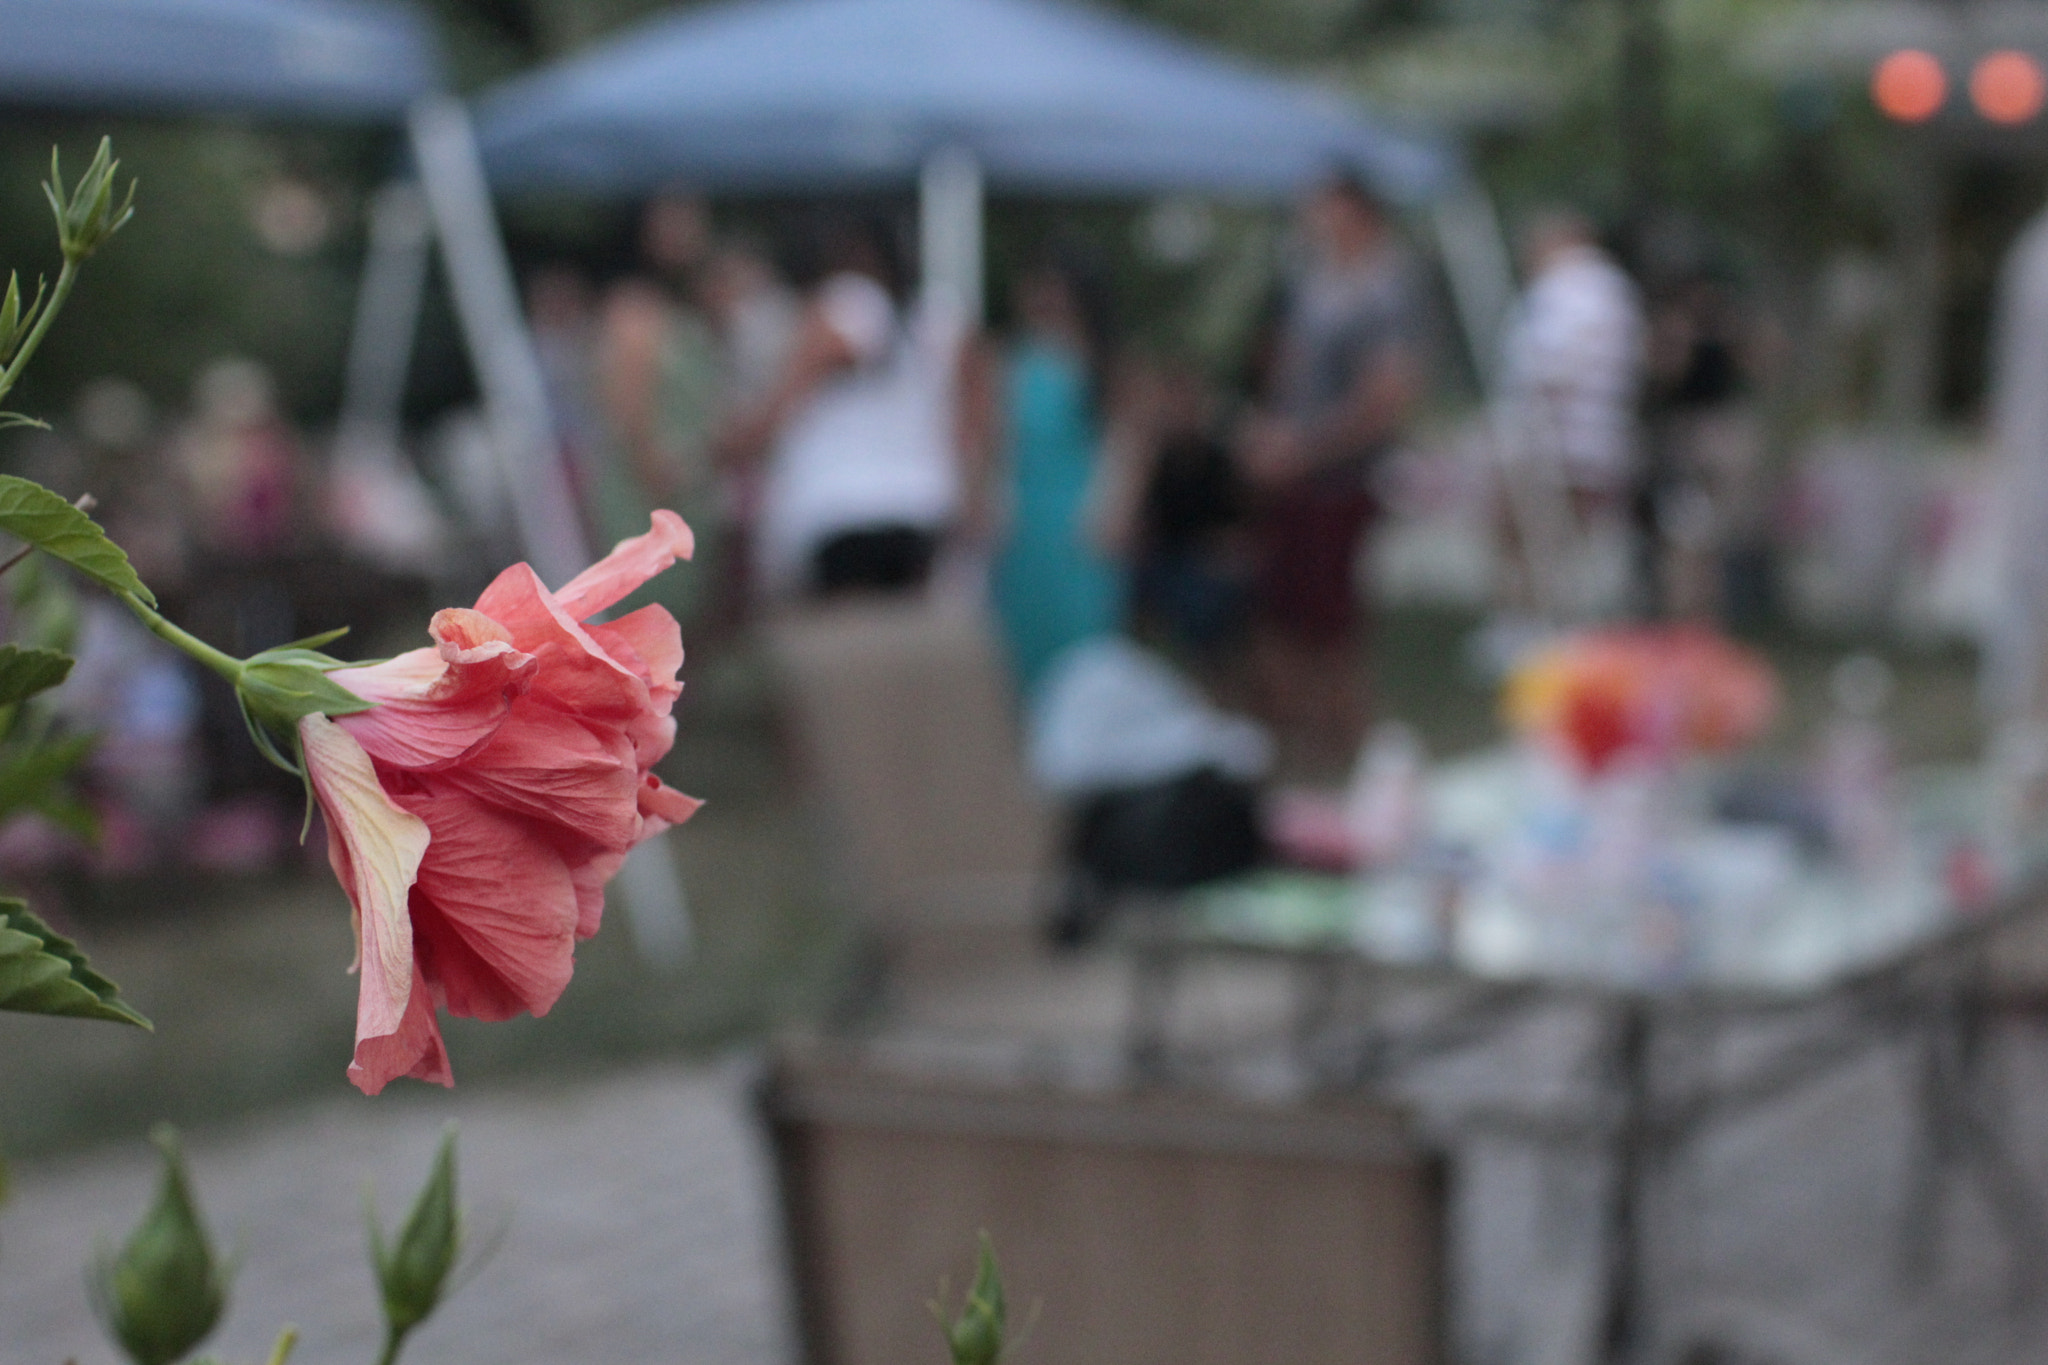 Photograph Friends, Food, and a Flower by Francis J Alcordo on 500px